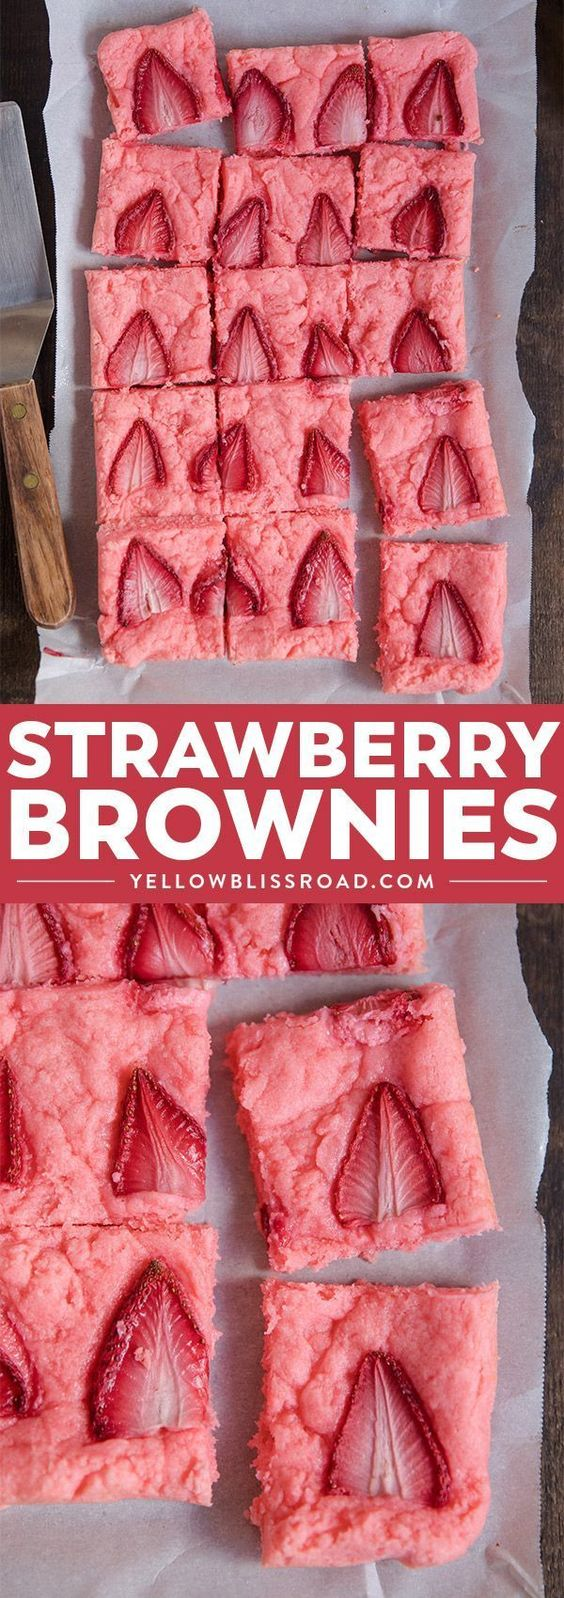 Strawberry Brownies #dessert #cake #valentineday #strawberry #brownies